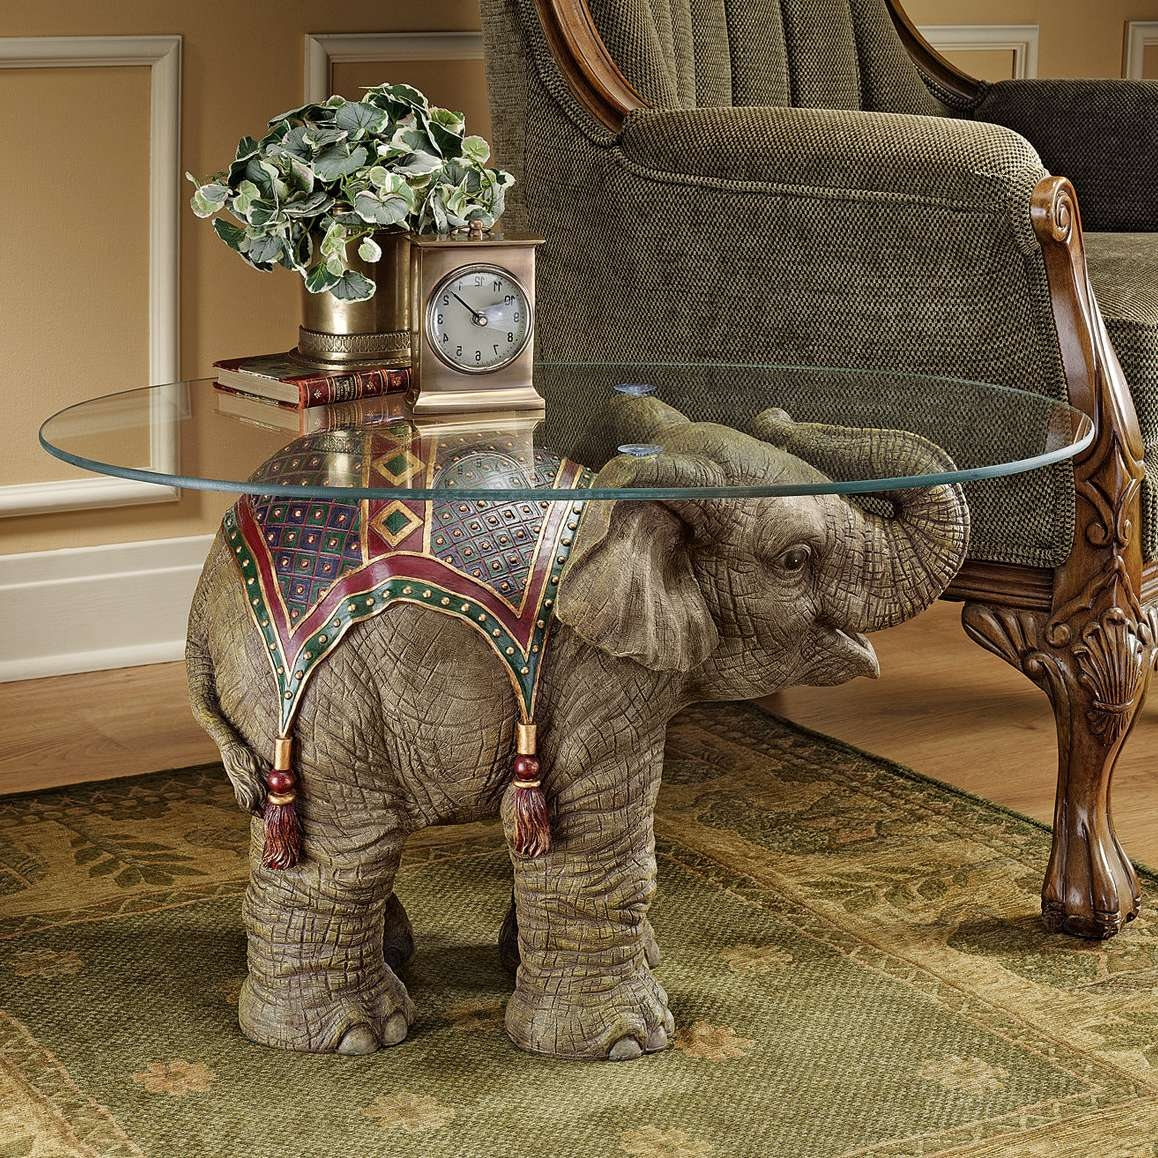 Current Elephant Coffee Tables Throughout Design Toscano Jaipur Elephant Festival Coffee Table & Reviews (View 7 of 20)